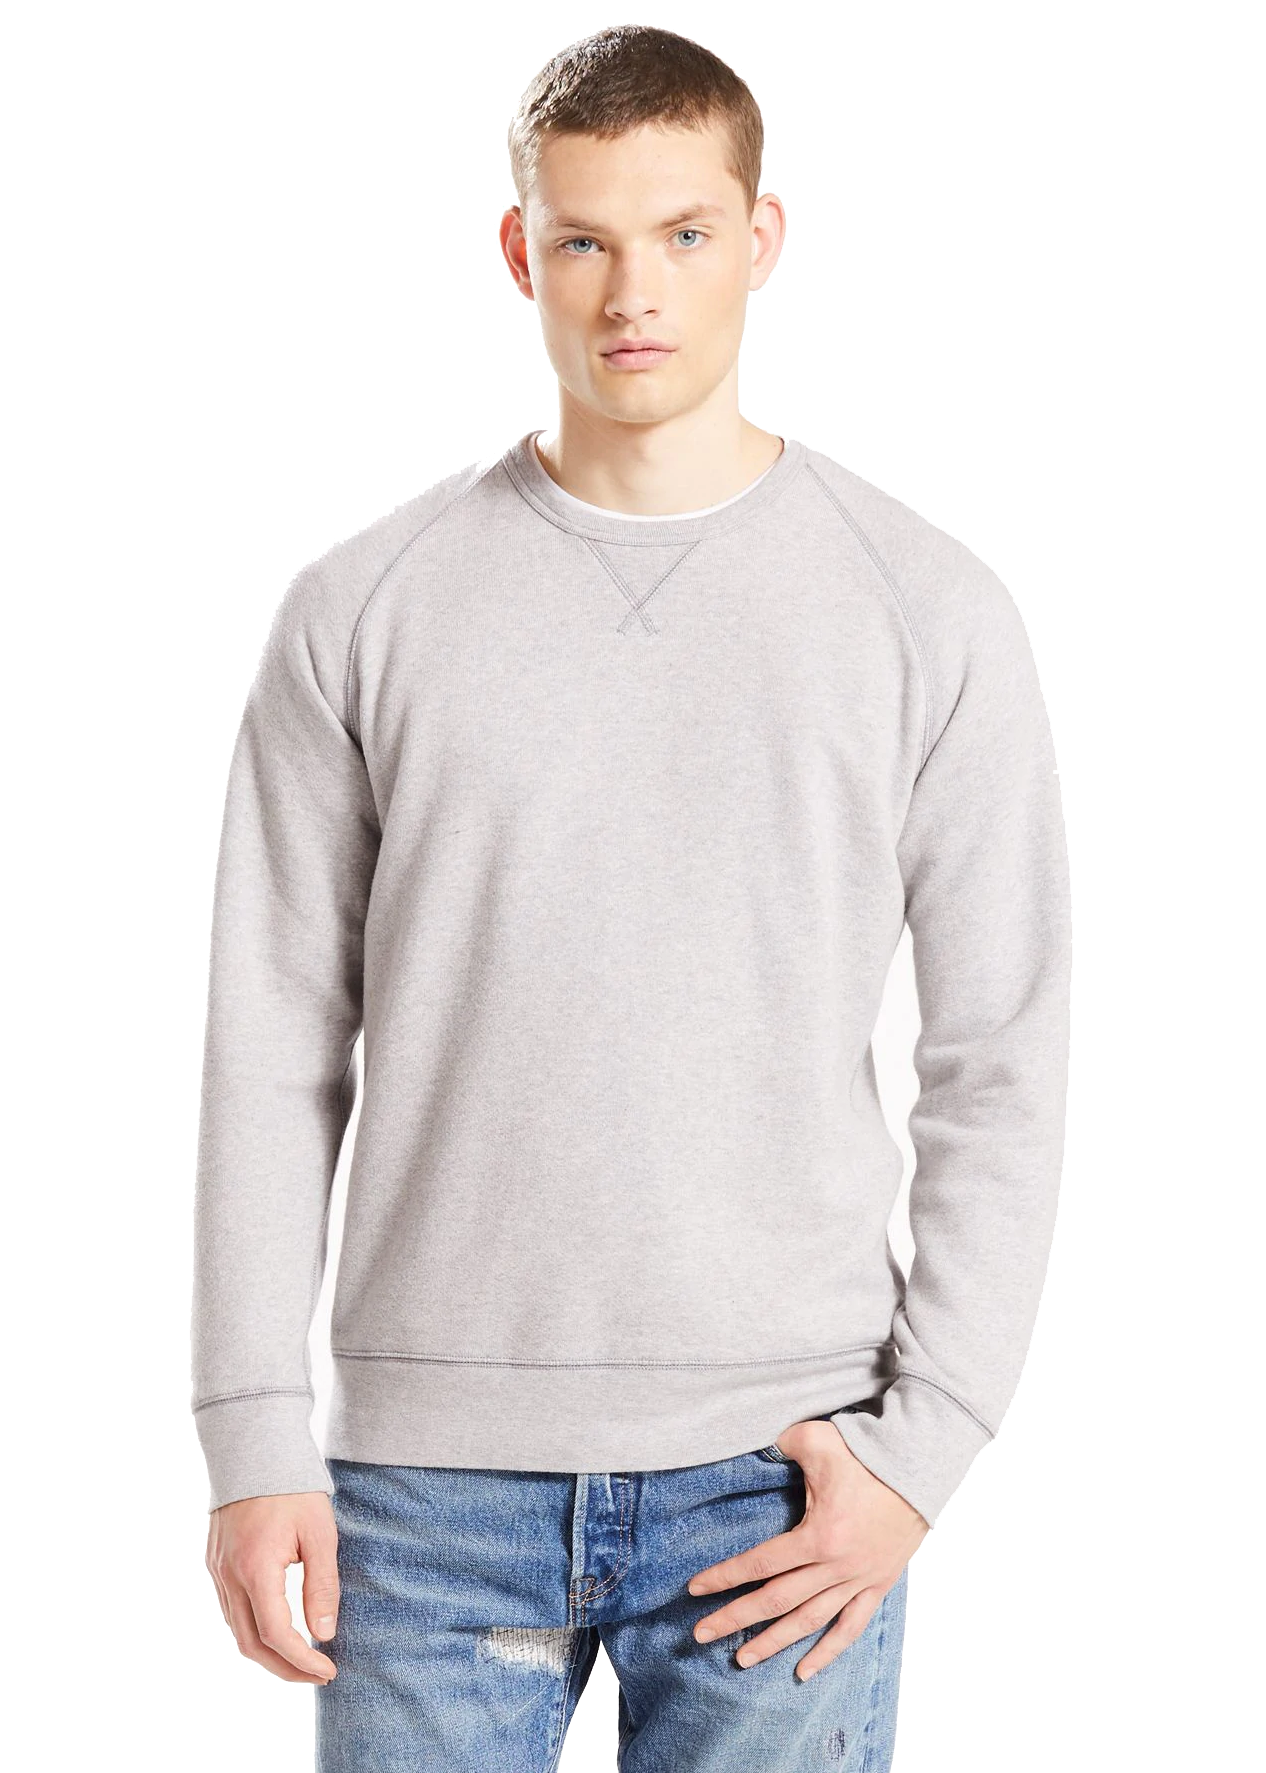 Levi's Original Crew 3 (Medium Grey Heather) - ChicStyle